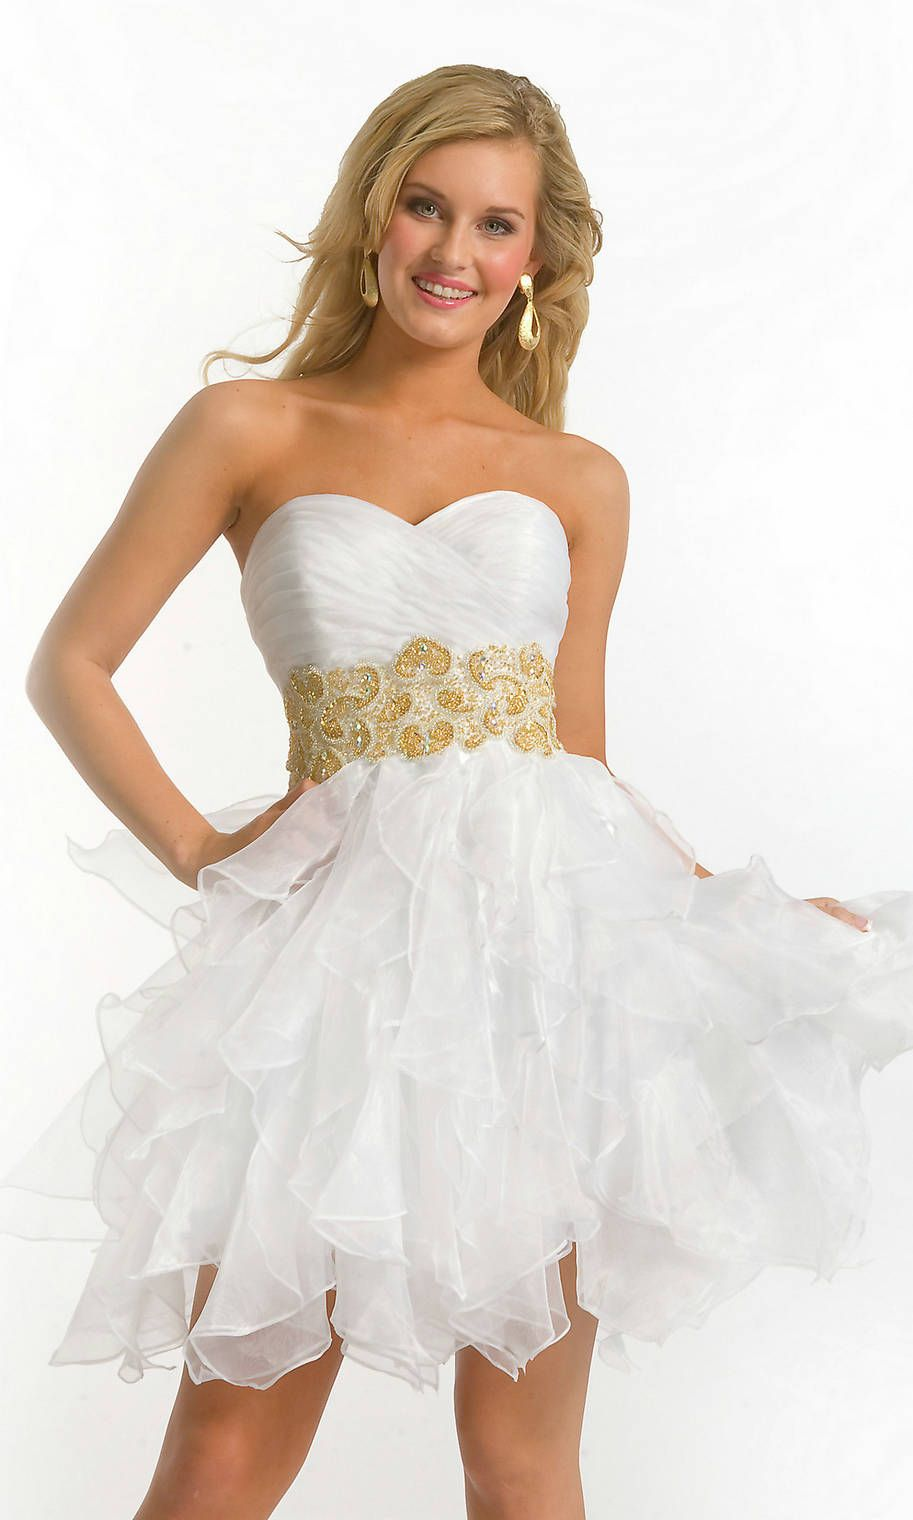 1000  images about White Prom Dresses on Pinterest - Embellished ...